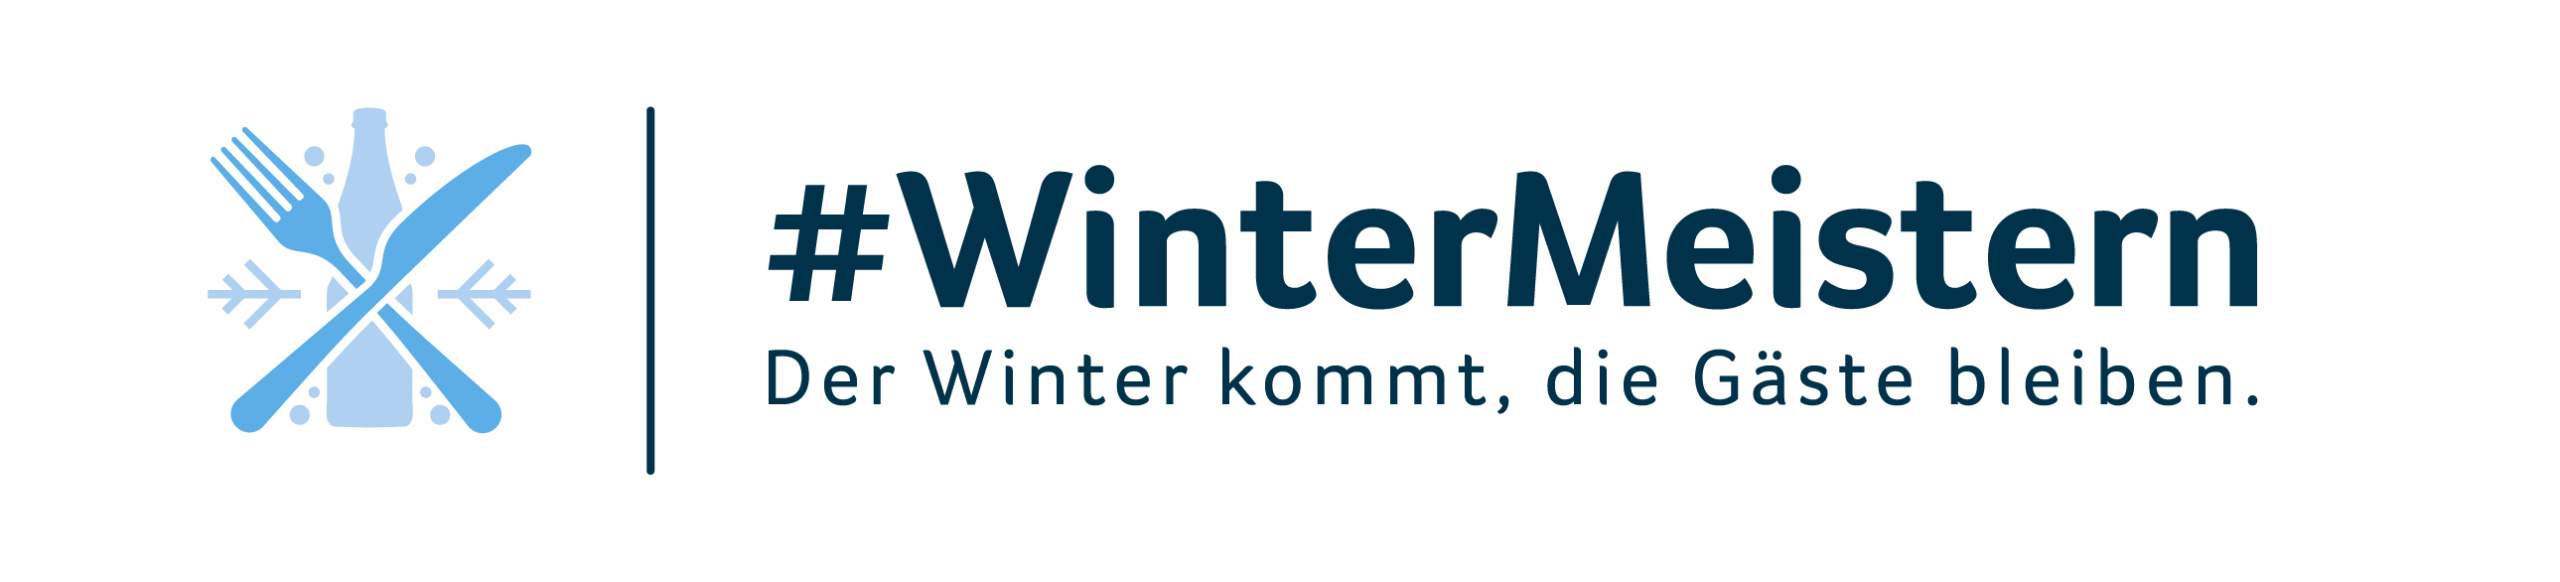 Wintermeistern